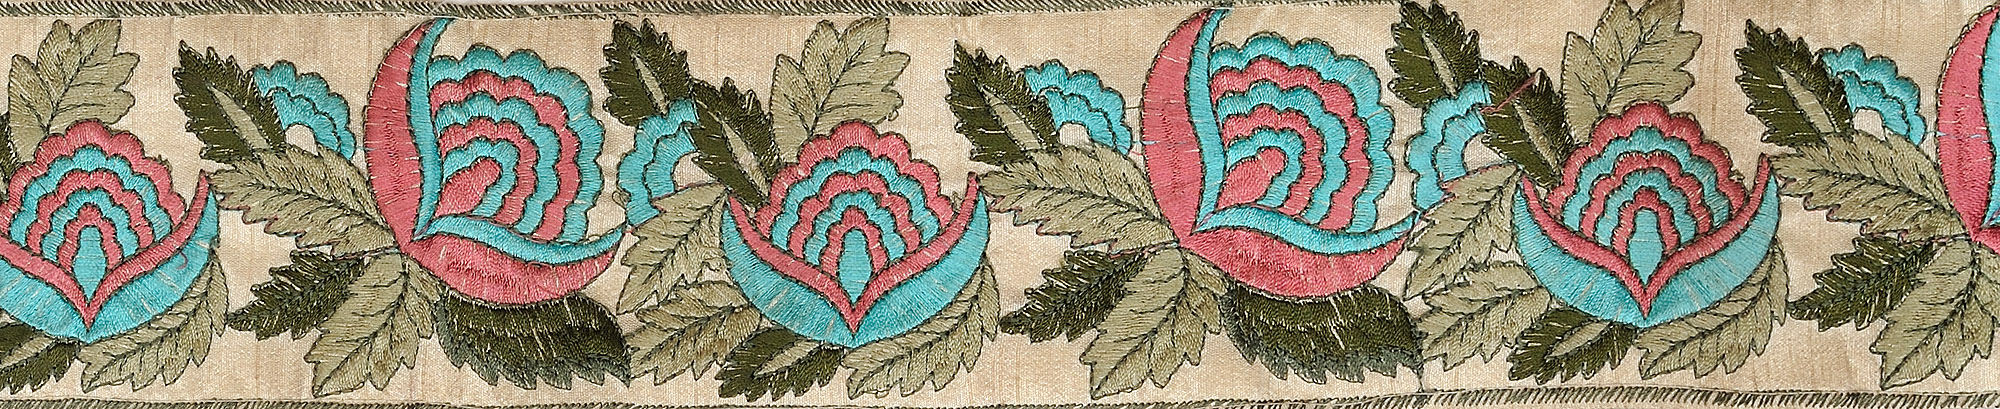 Purchment fabric border with ari embroidered flowers and